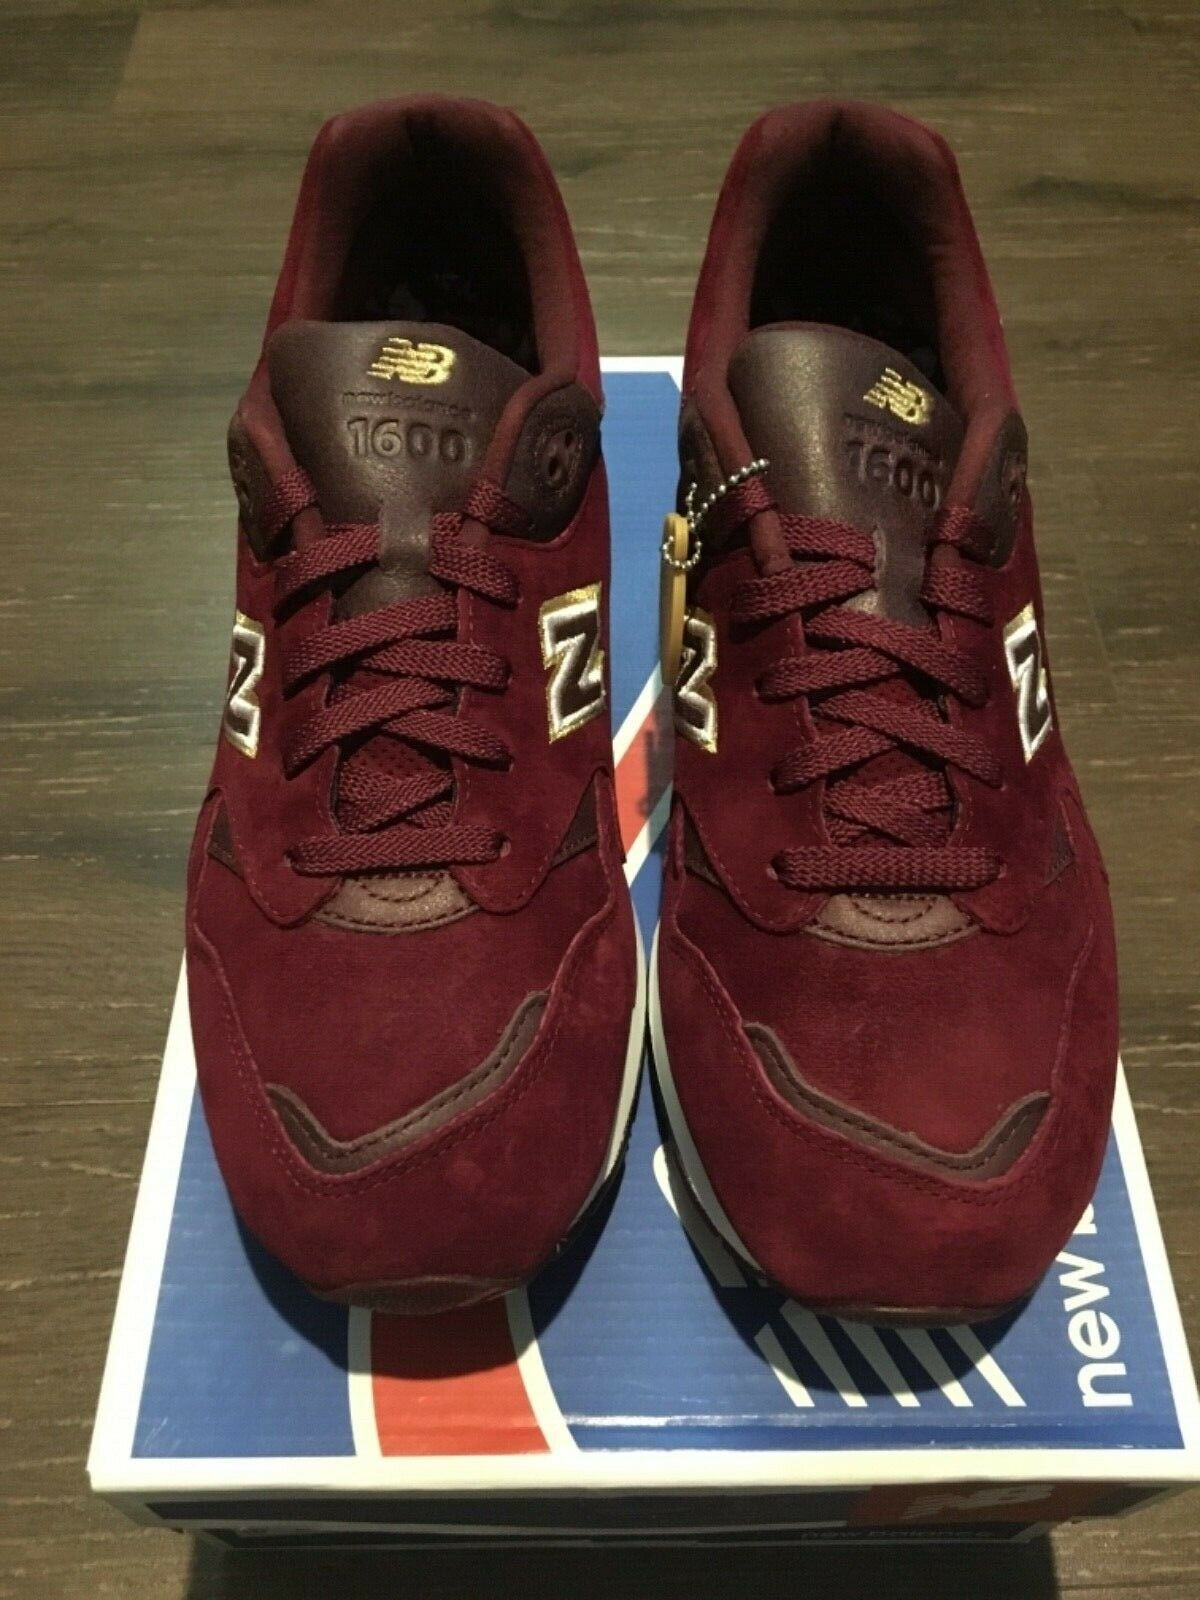 New Balance Ubiq 1600 English Crown Size US 8.5 Maroon new Fieg Kith concepts 1